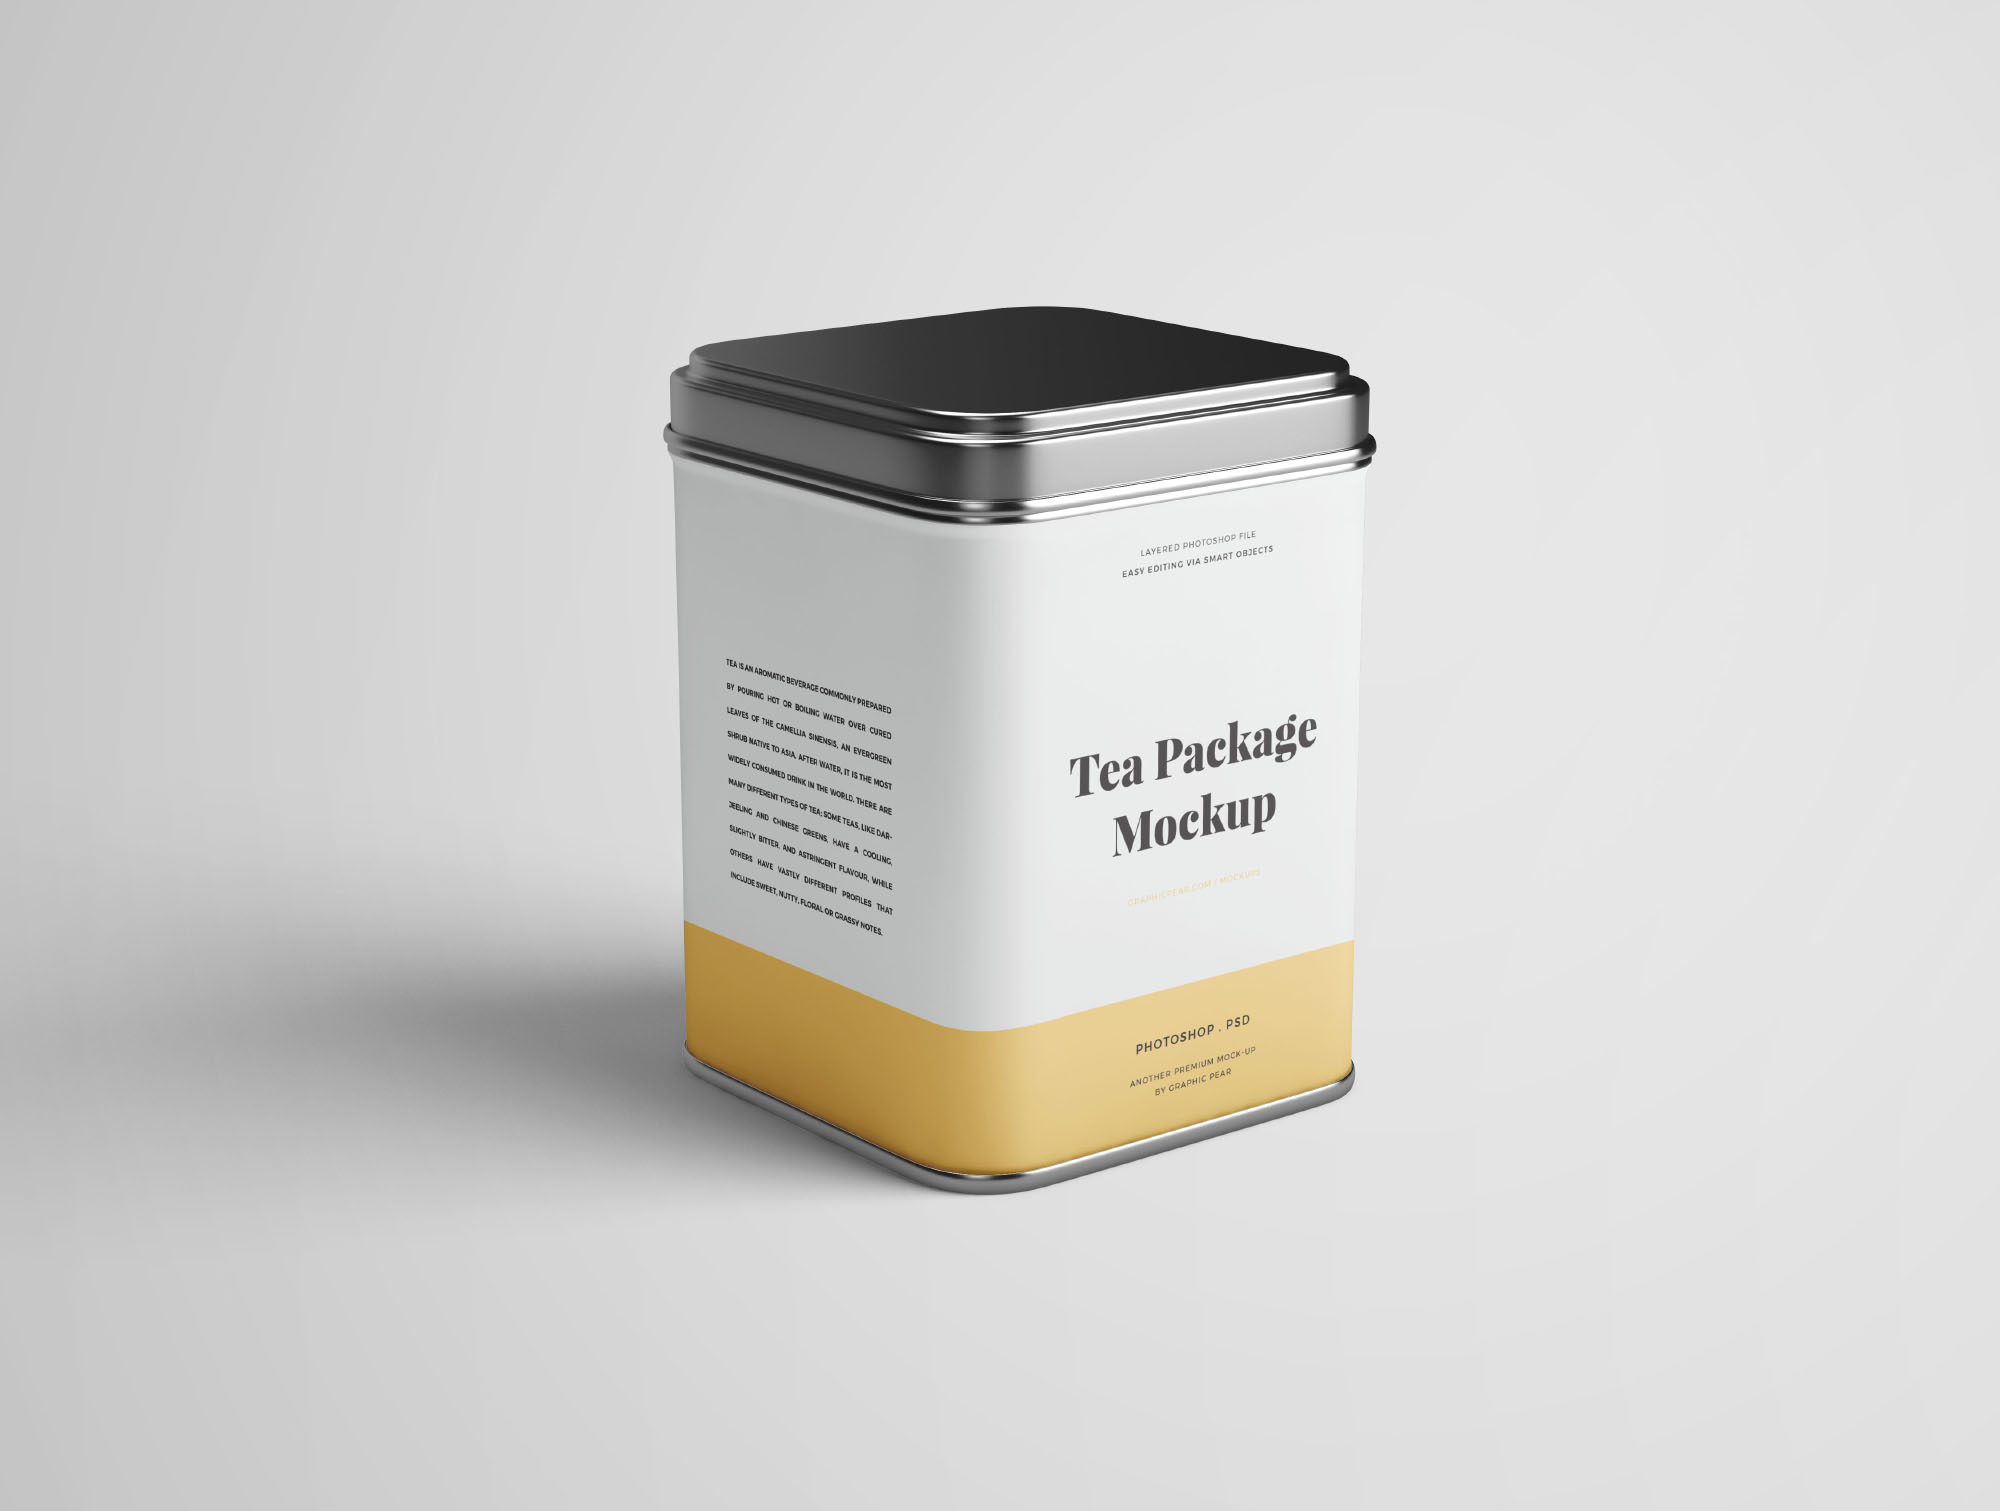 Tea Package Mockups - Perspective